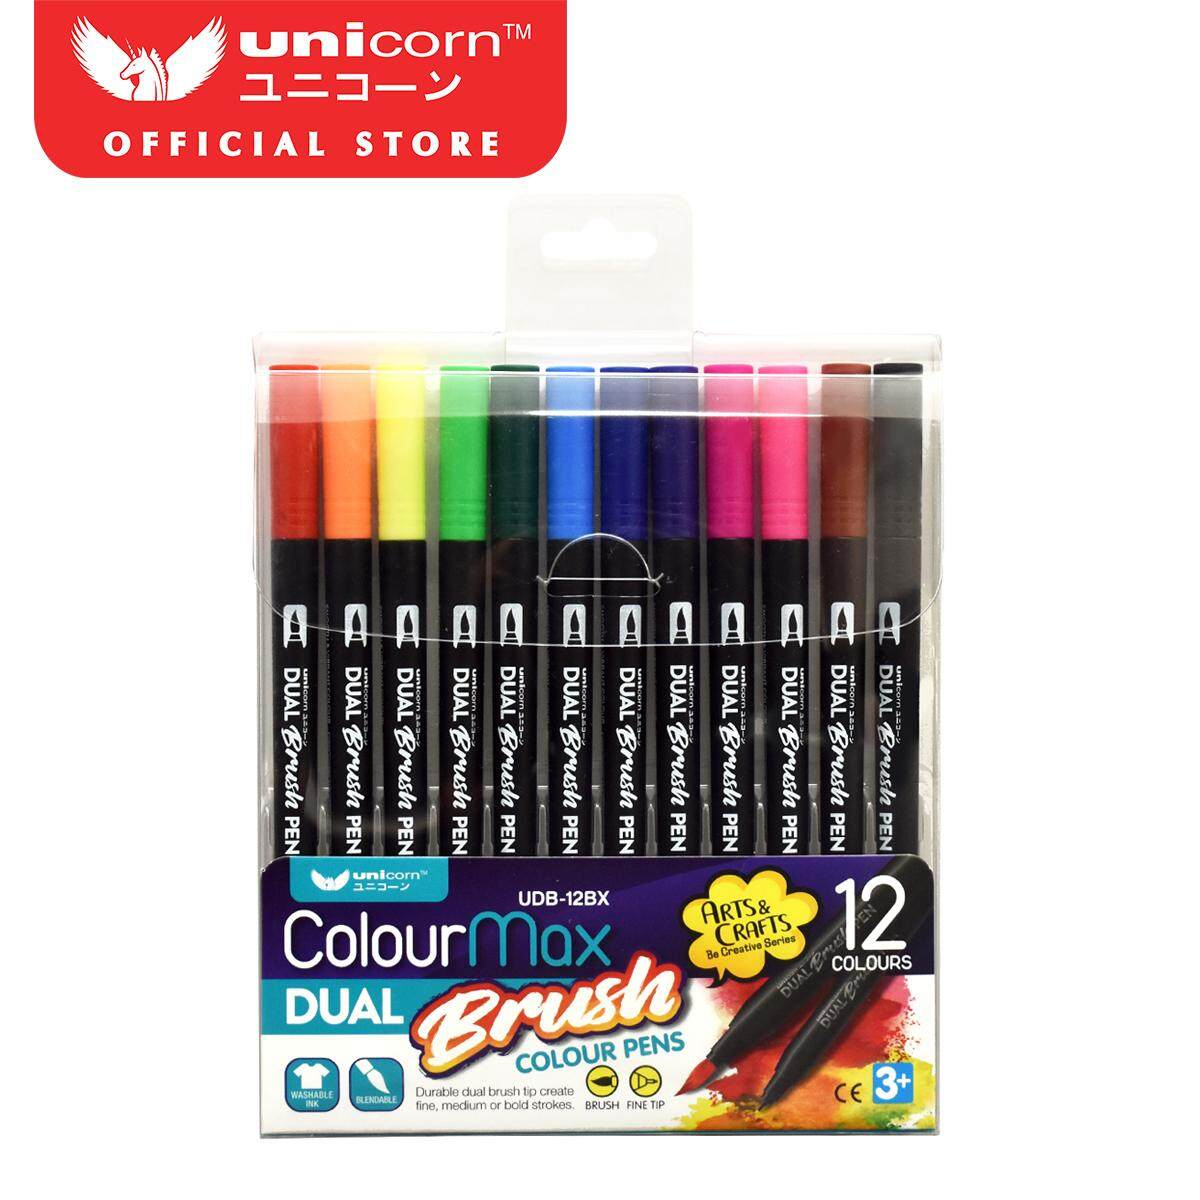 Unicorn Dual Brush Pen UDB-12BX